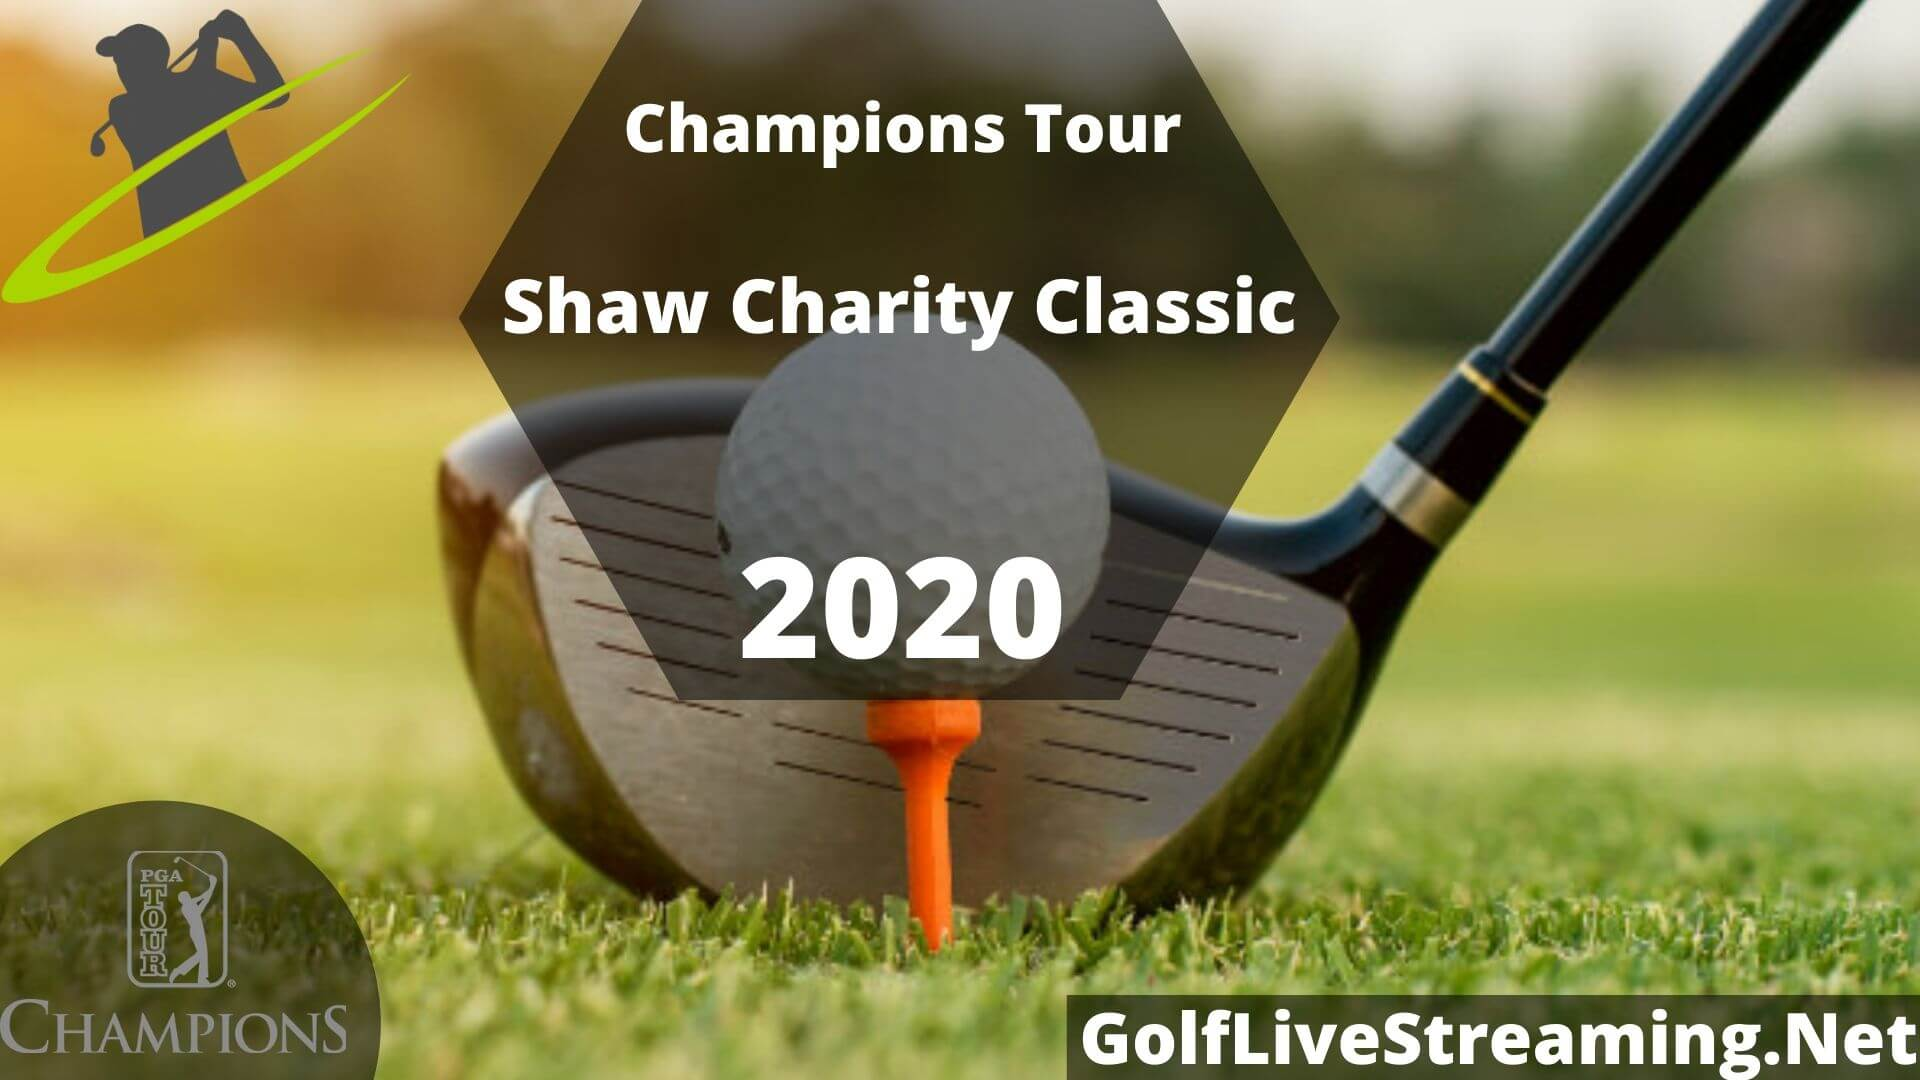 Shaw Charity Classic Live Stream 2020 | Champions Tour Round 1